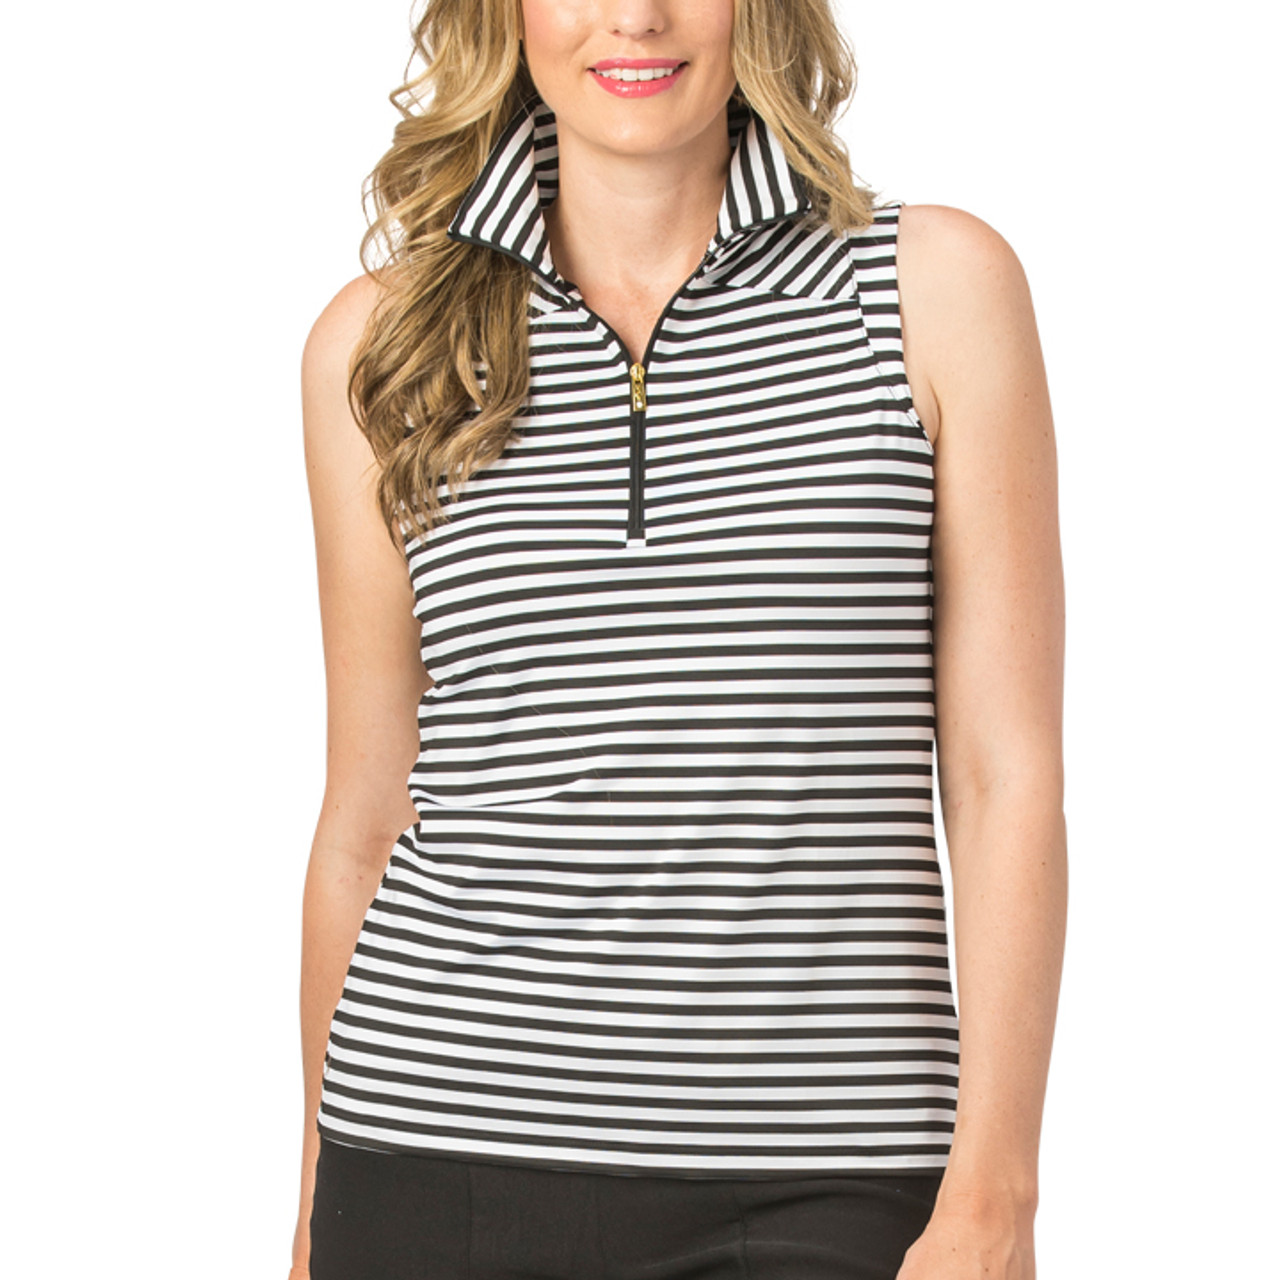 d3bffdd01ae Nancy Lopez Black White Stripe Sleeveless Polo